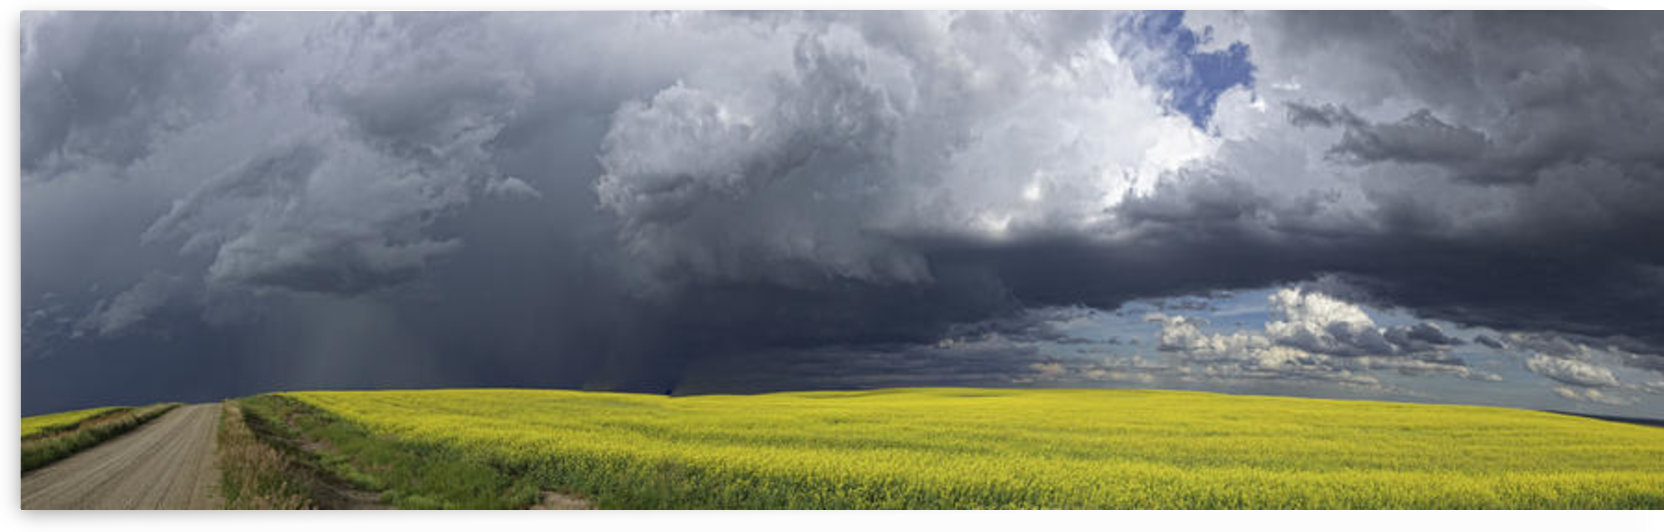 Panoramic of storm clouds gather over a sunlit canola field and country road; Alberta, Canada by PacificStock